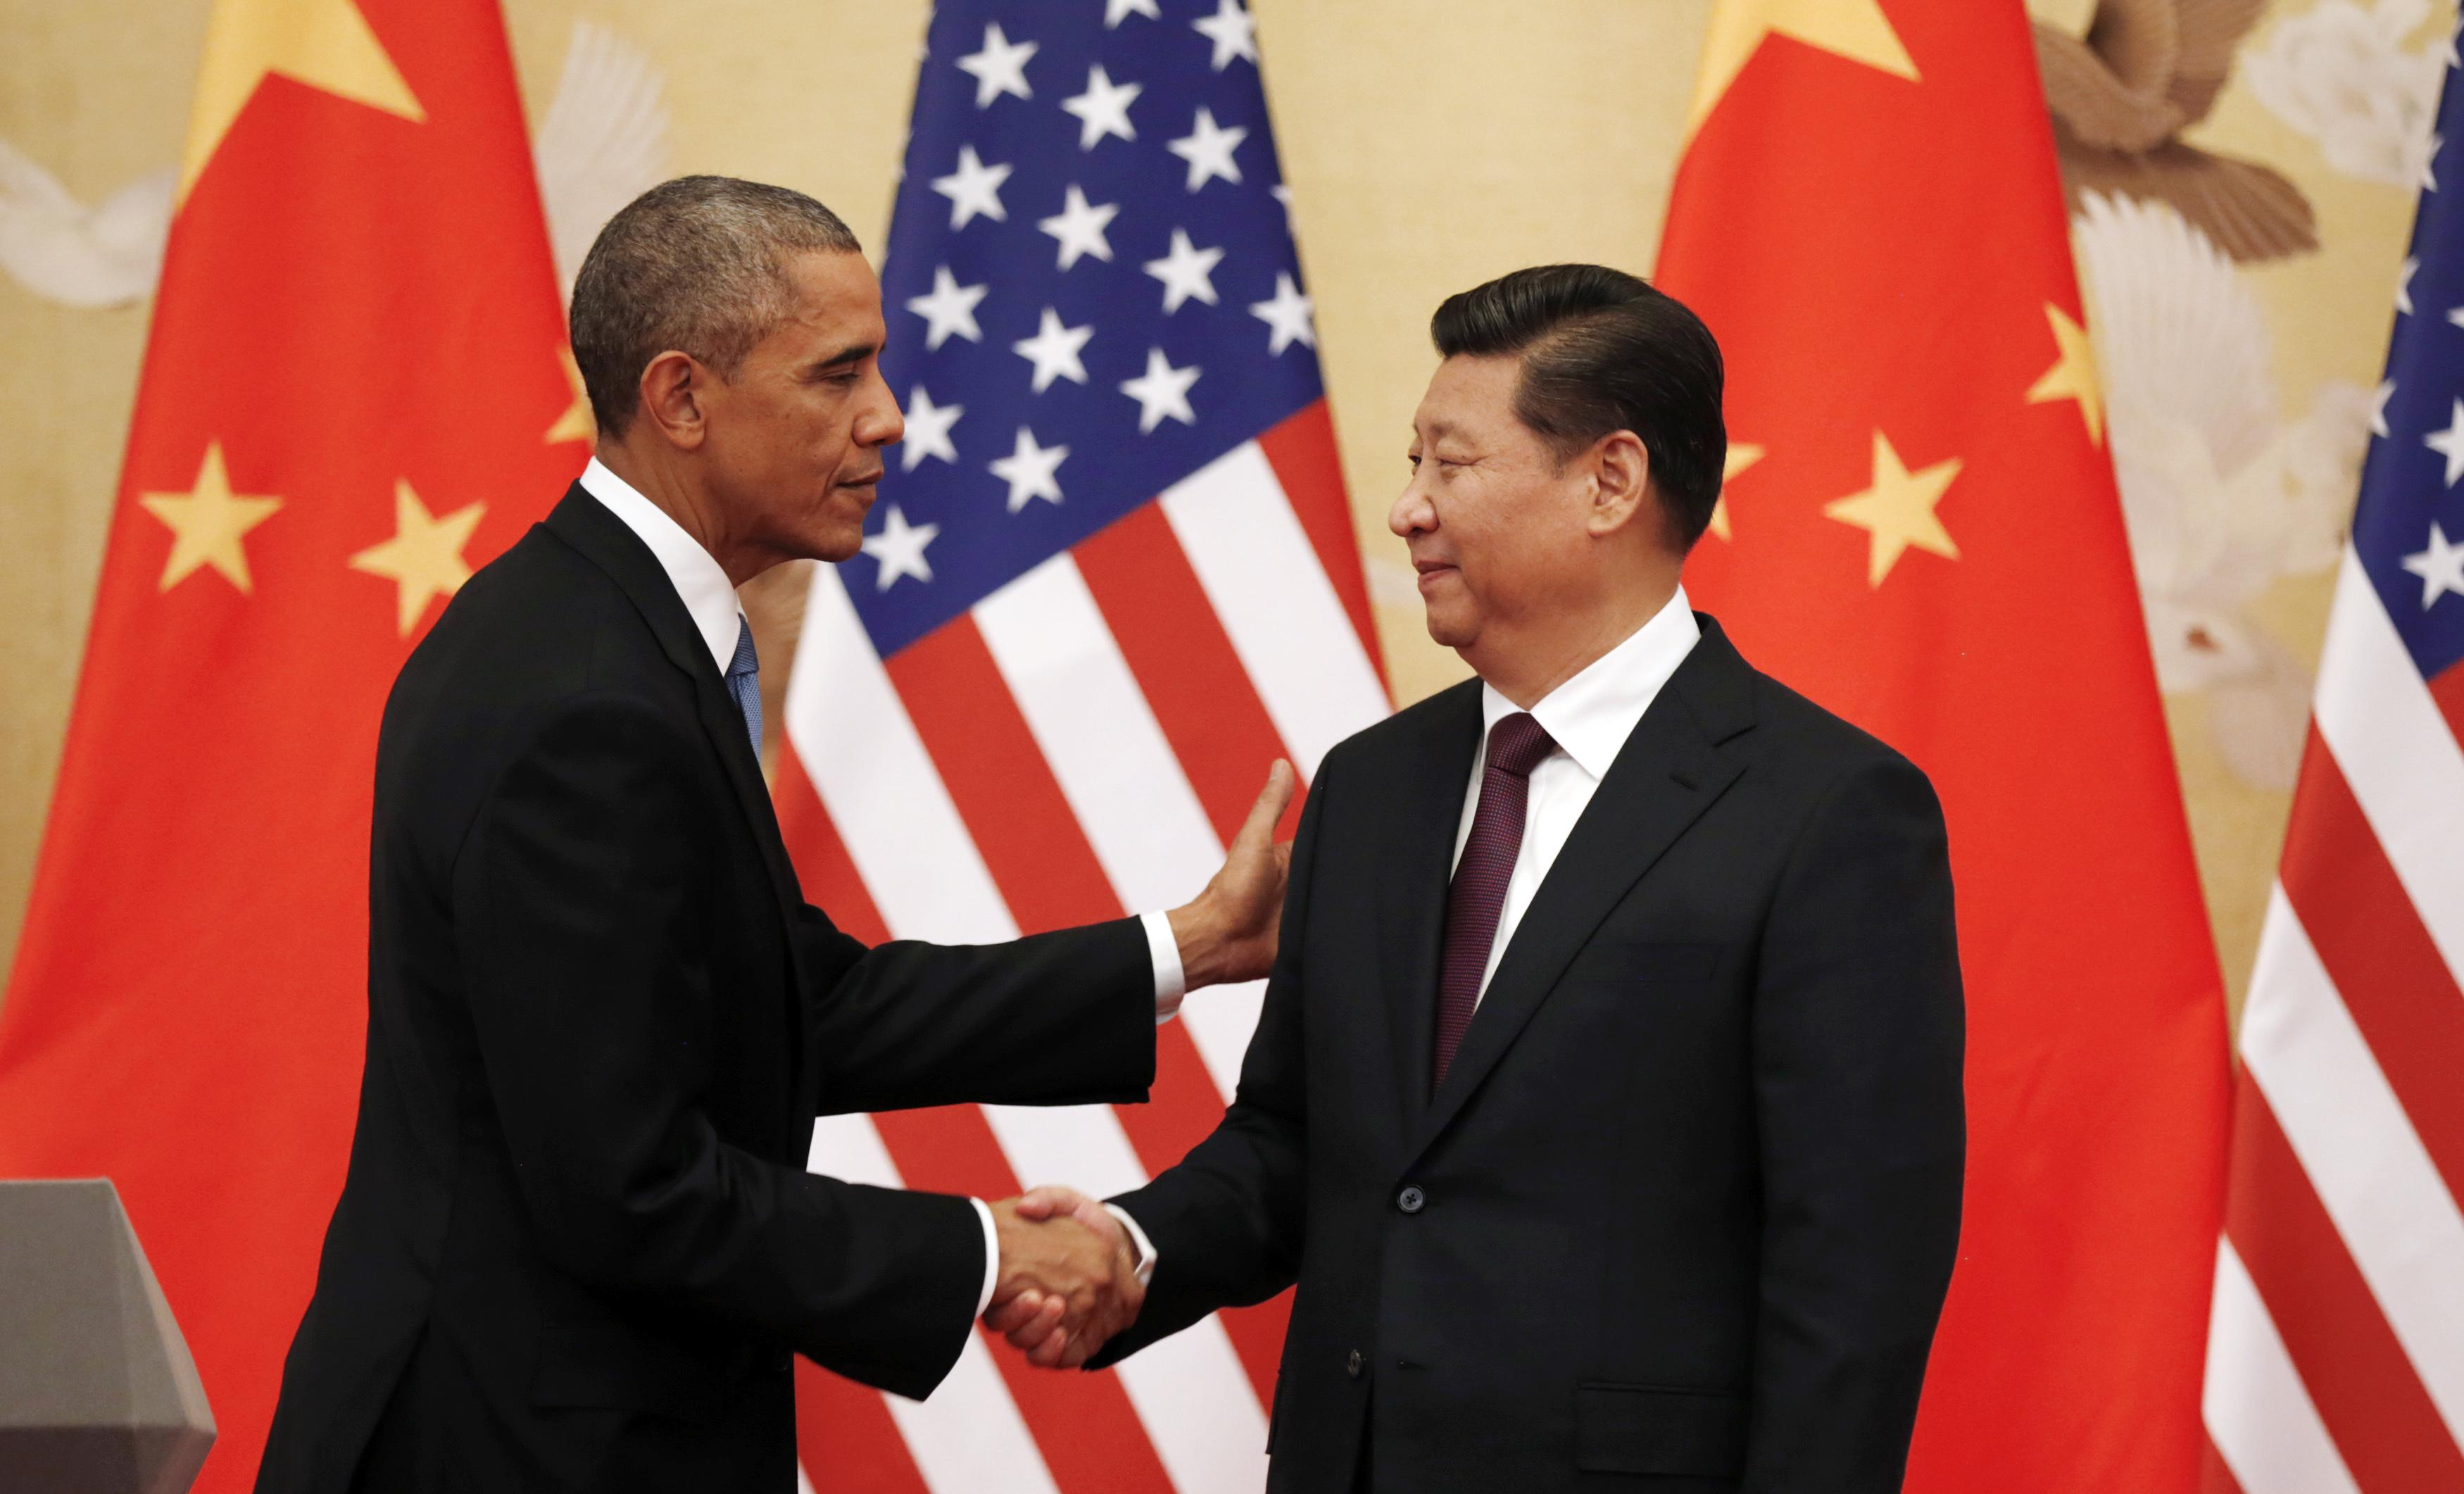 Obama-XiJinping-China- Cyberattacks